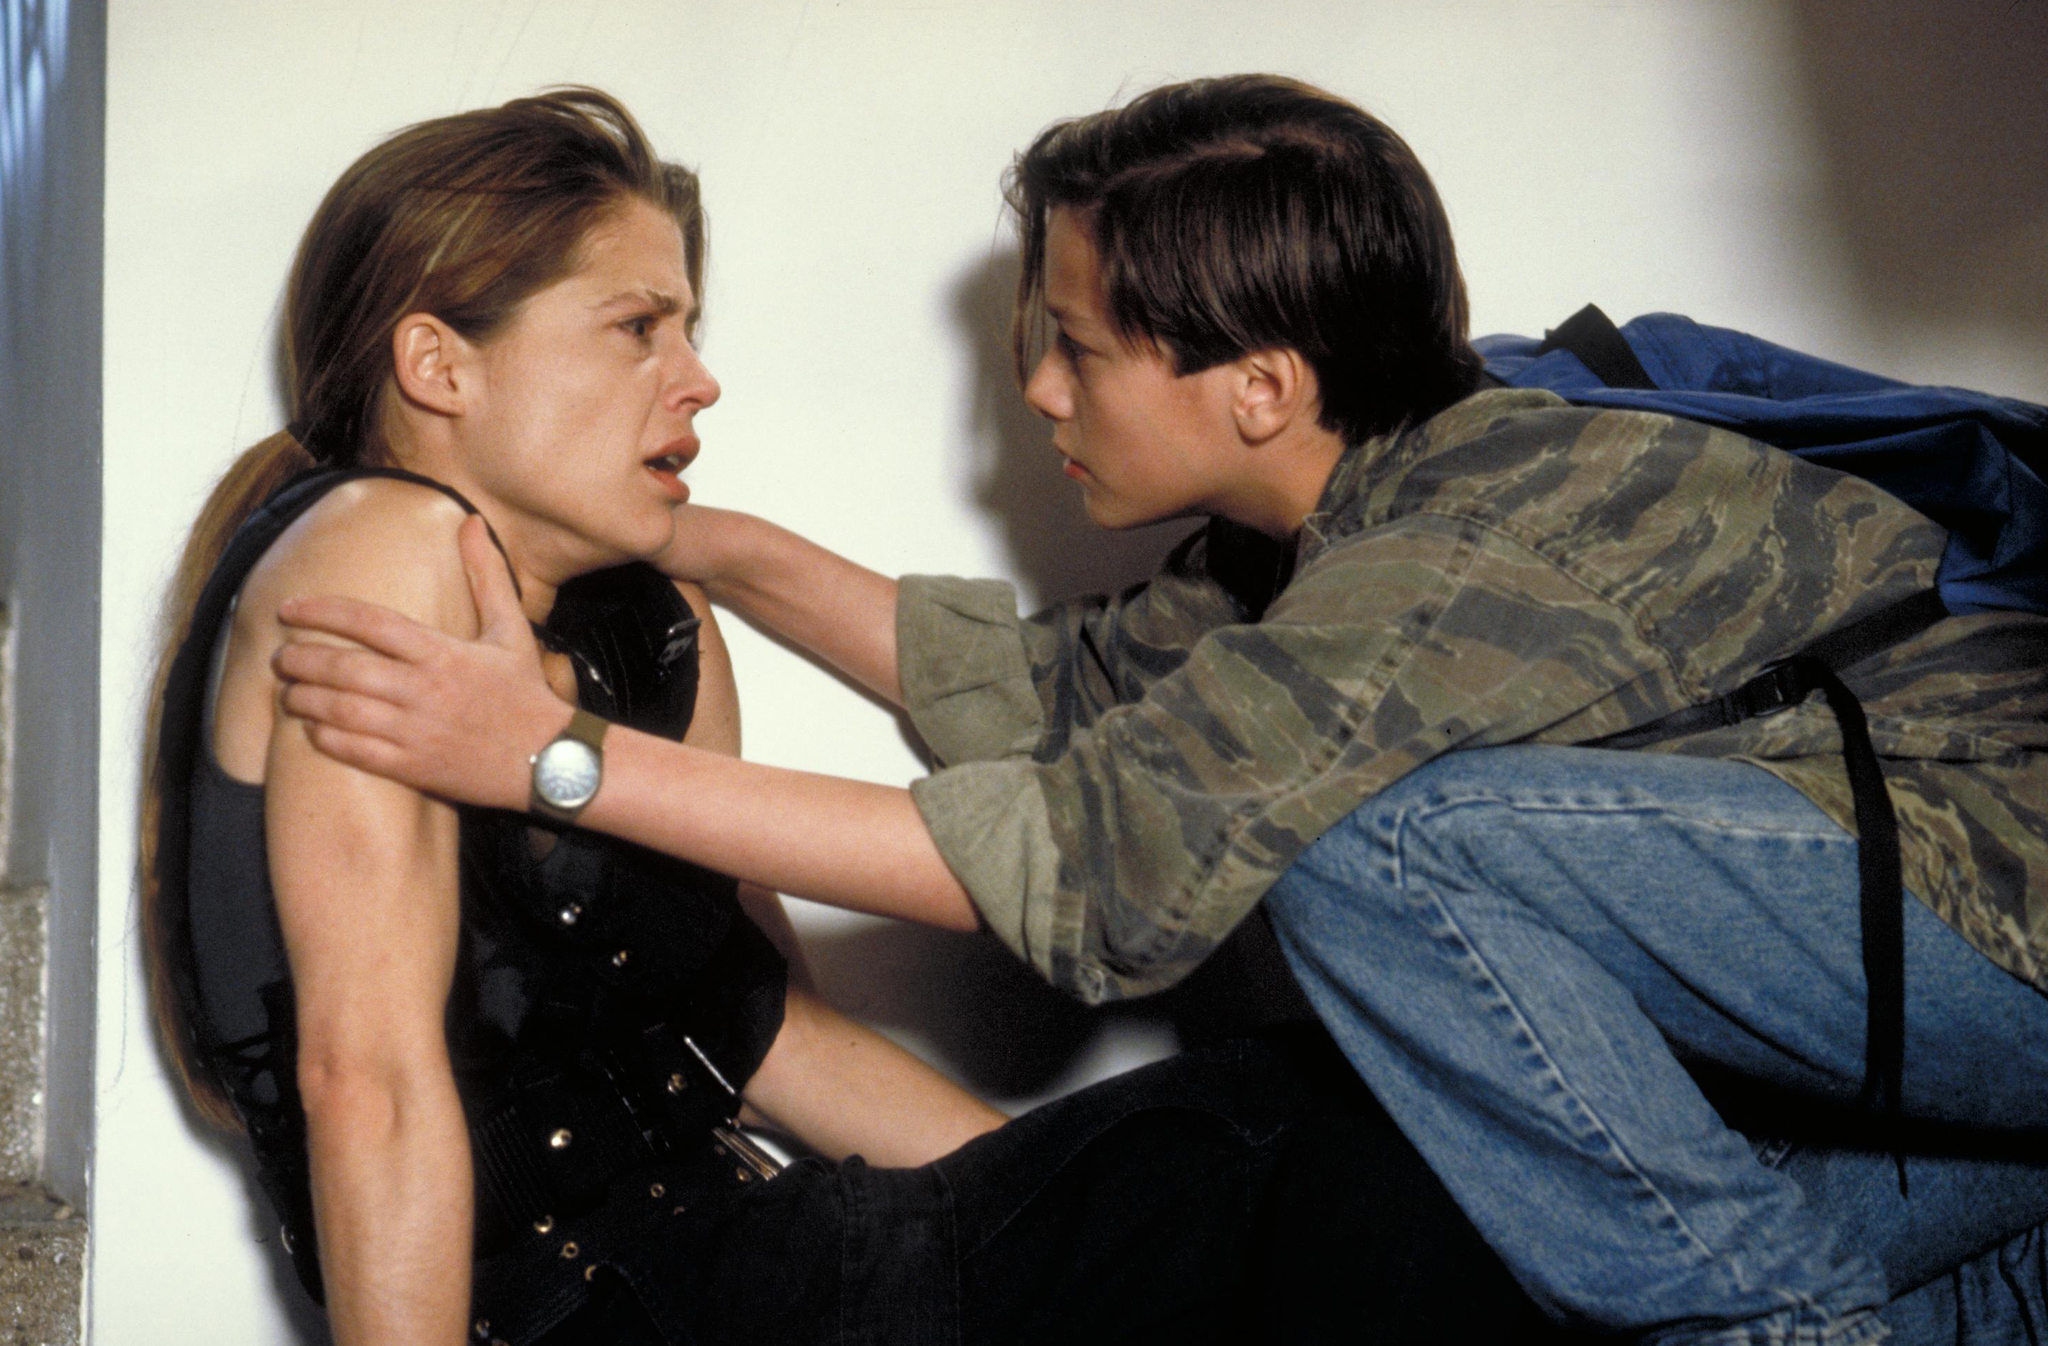 10 Facts About Terminator 2 That Deserve A Thumbs-Up